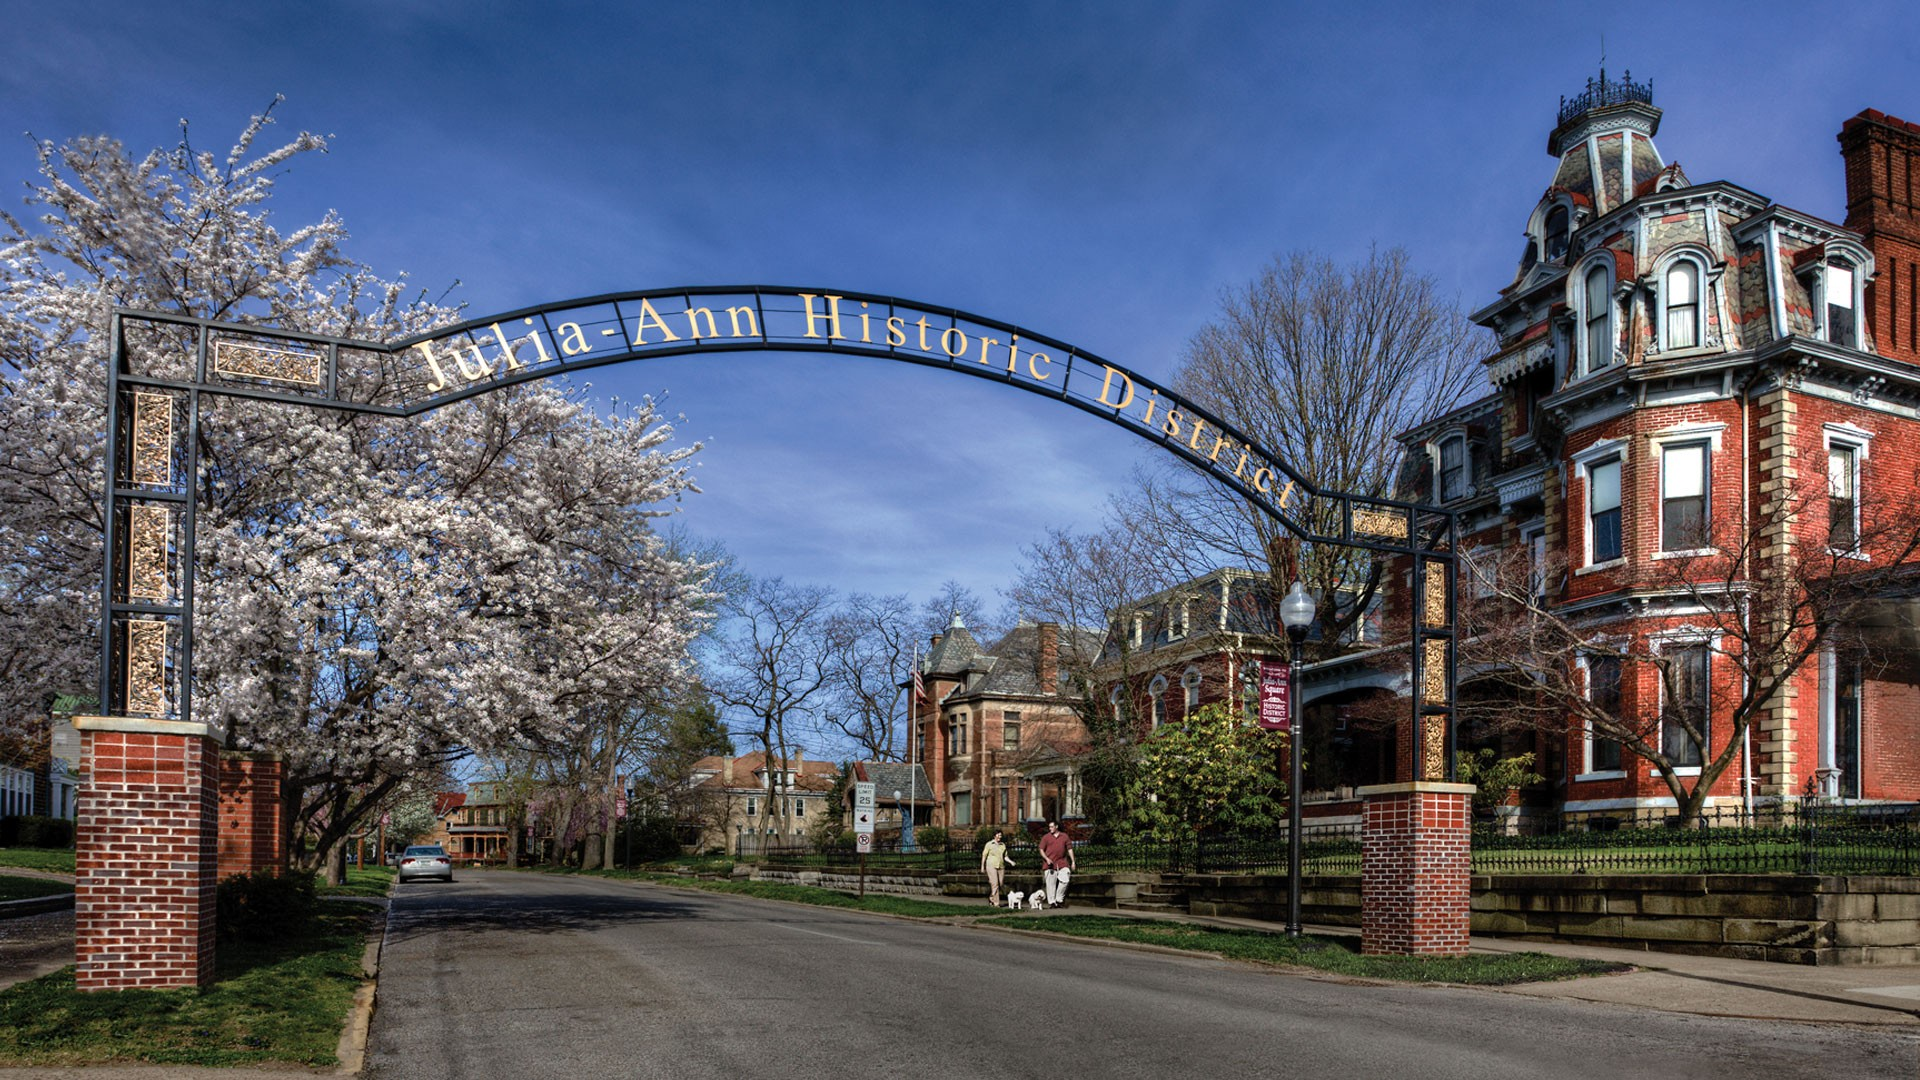 The Julia-Ann Square Historic District Community Association has installed gateway arches at each entrance to the district.